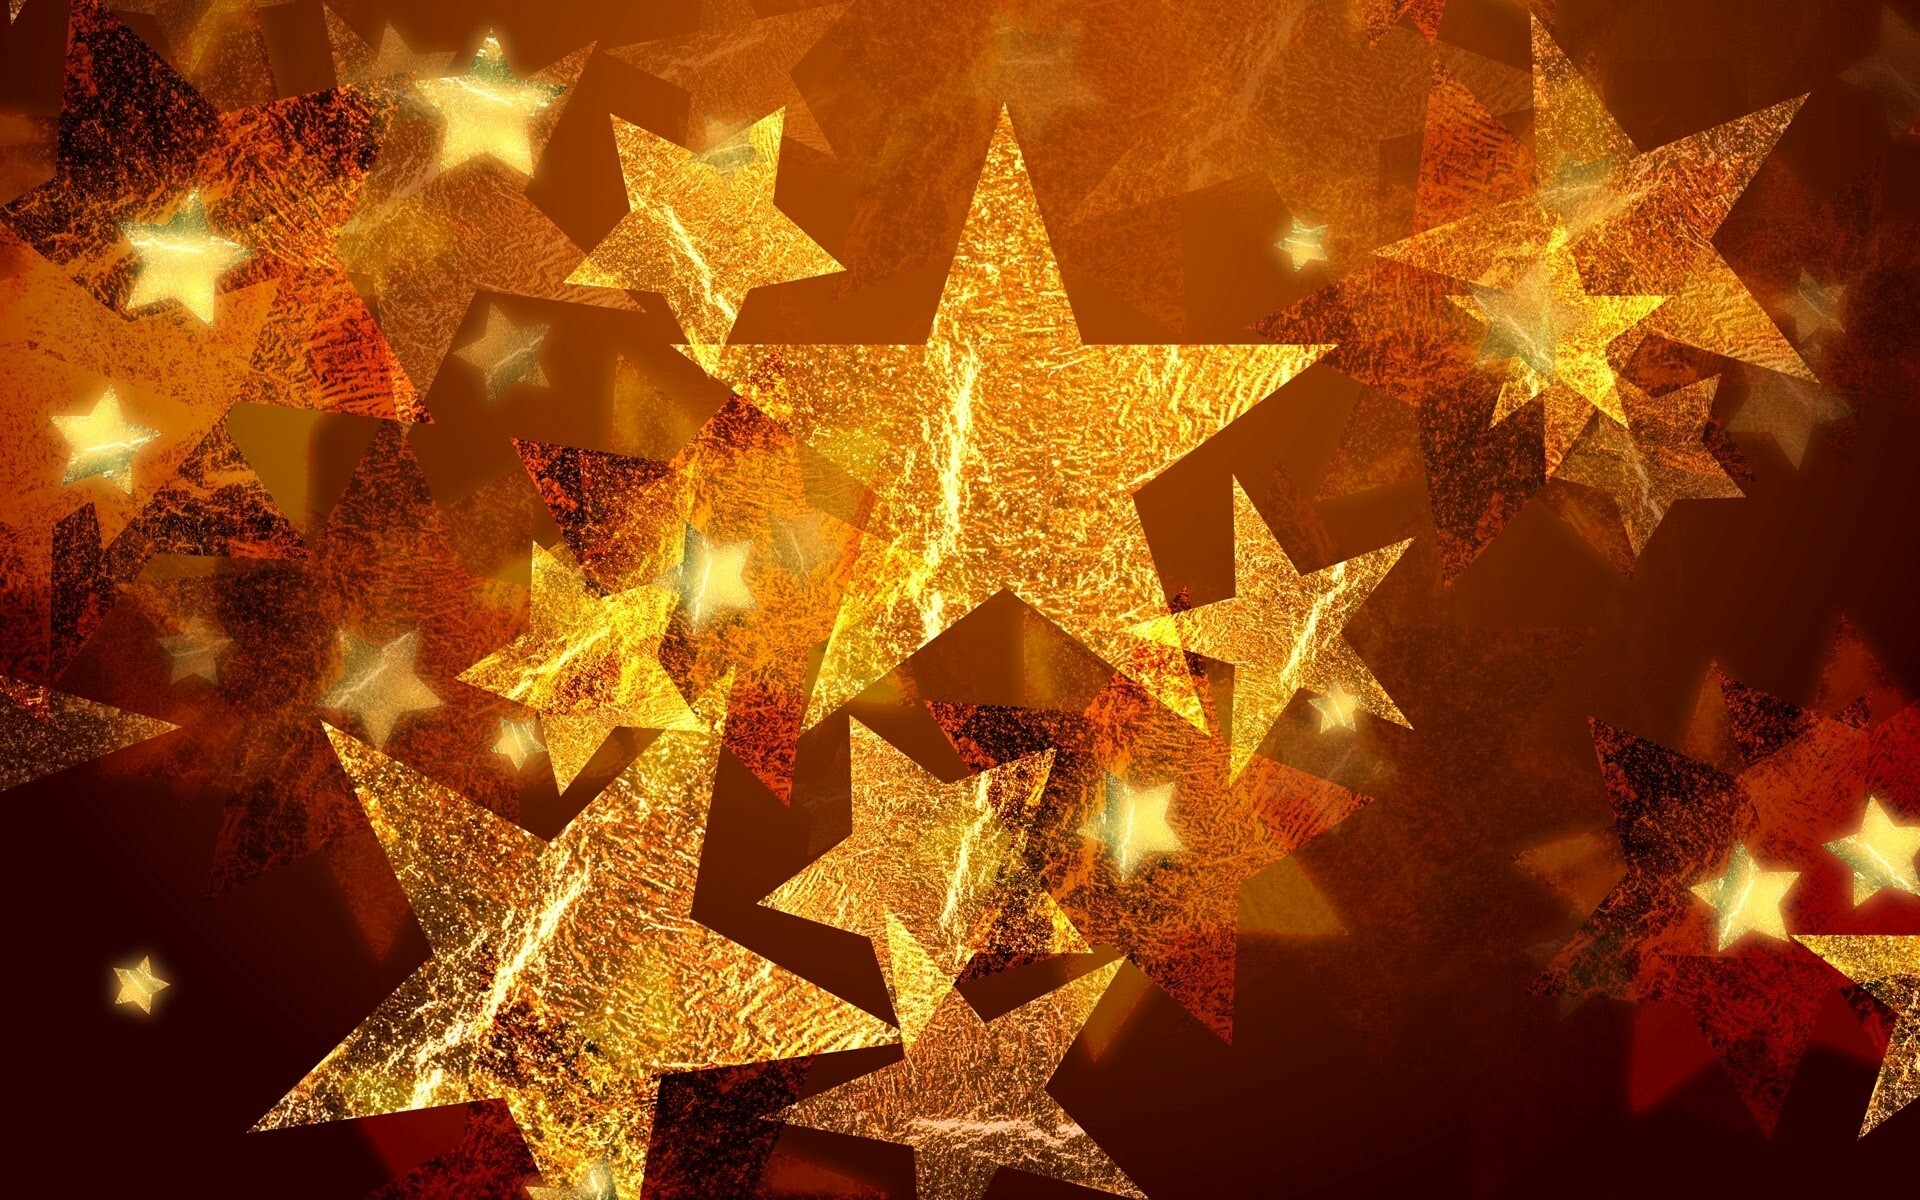 Beautiful Christmas Star Free Images | HD Wallpapers